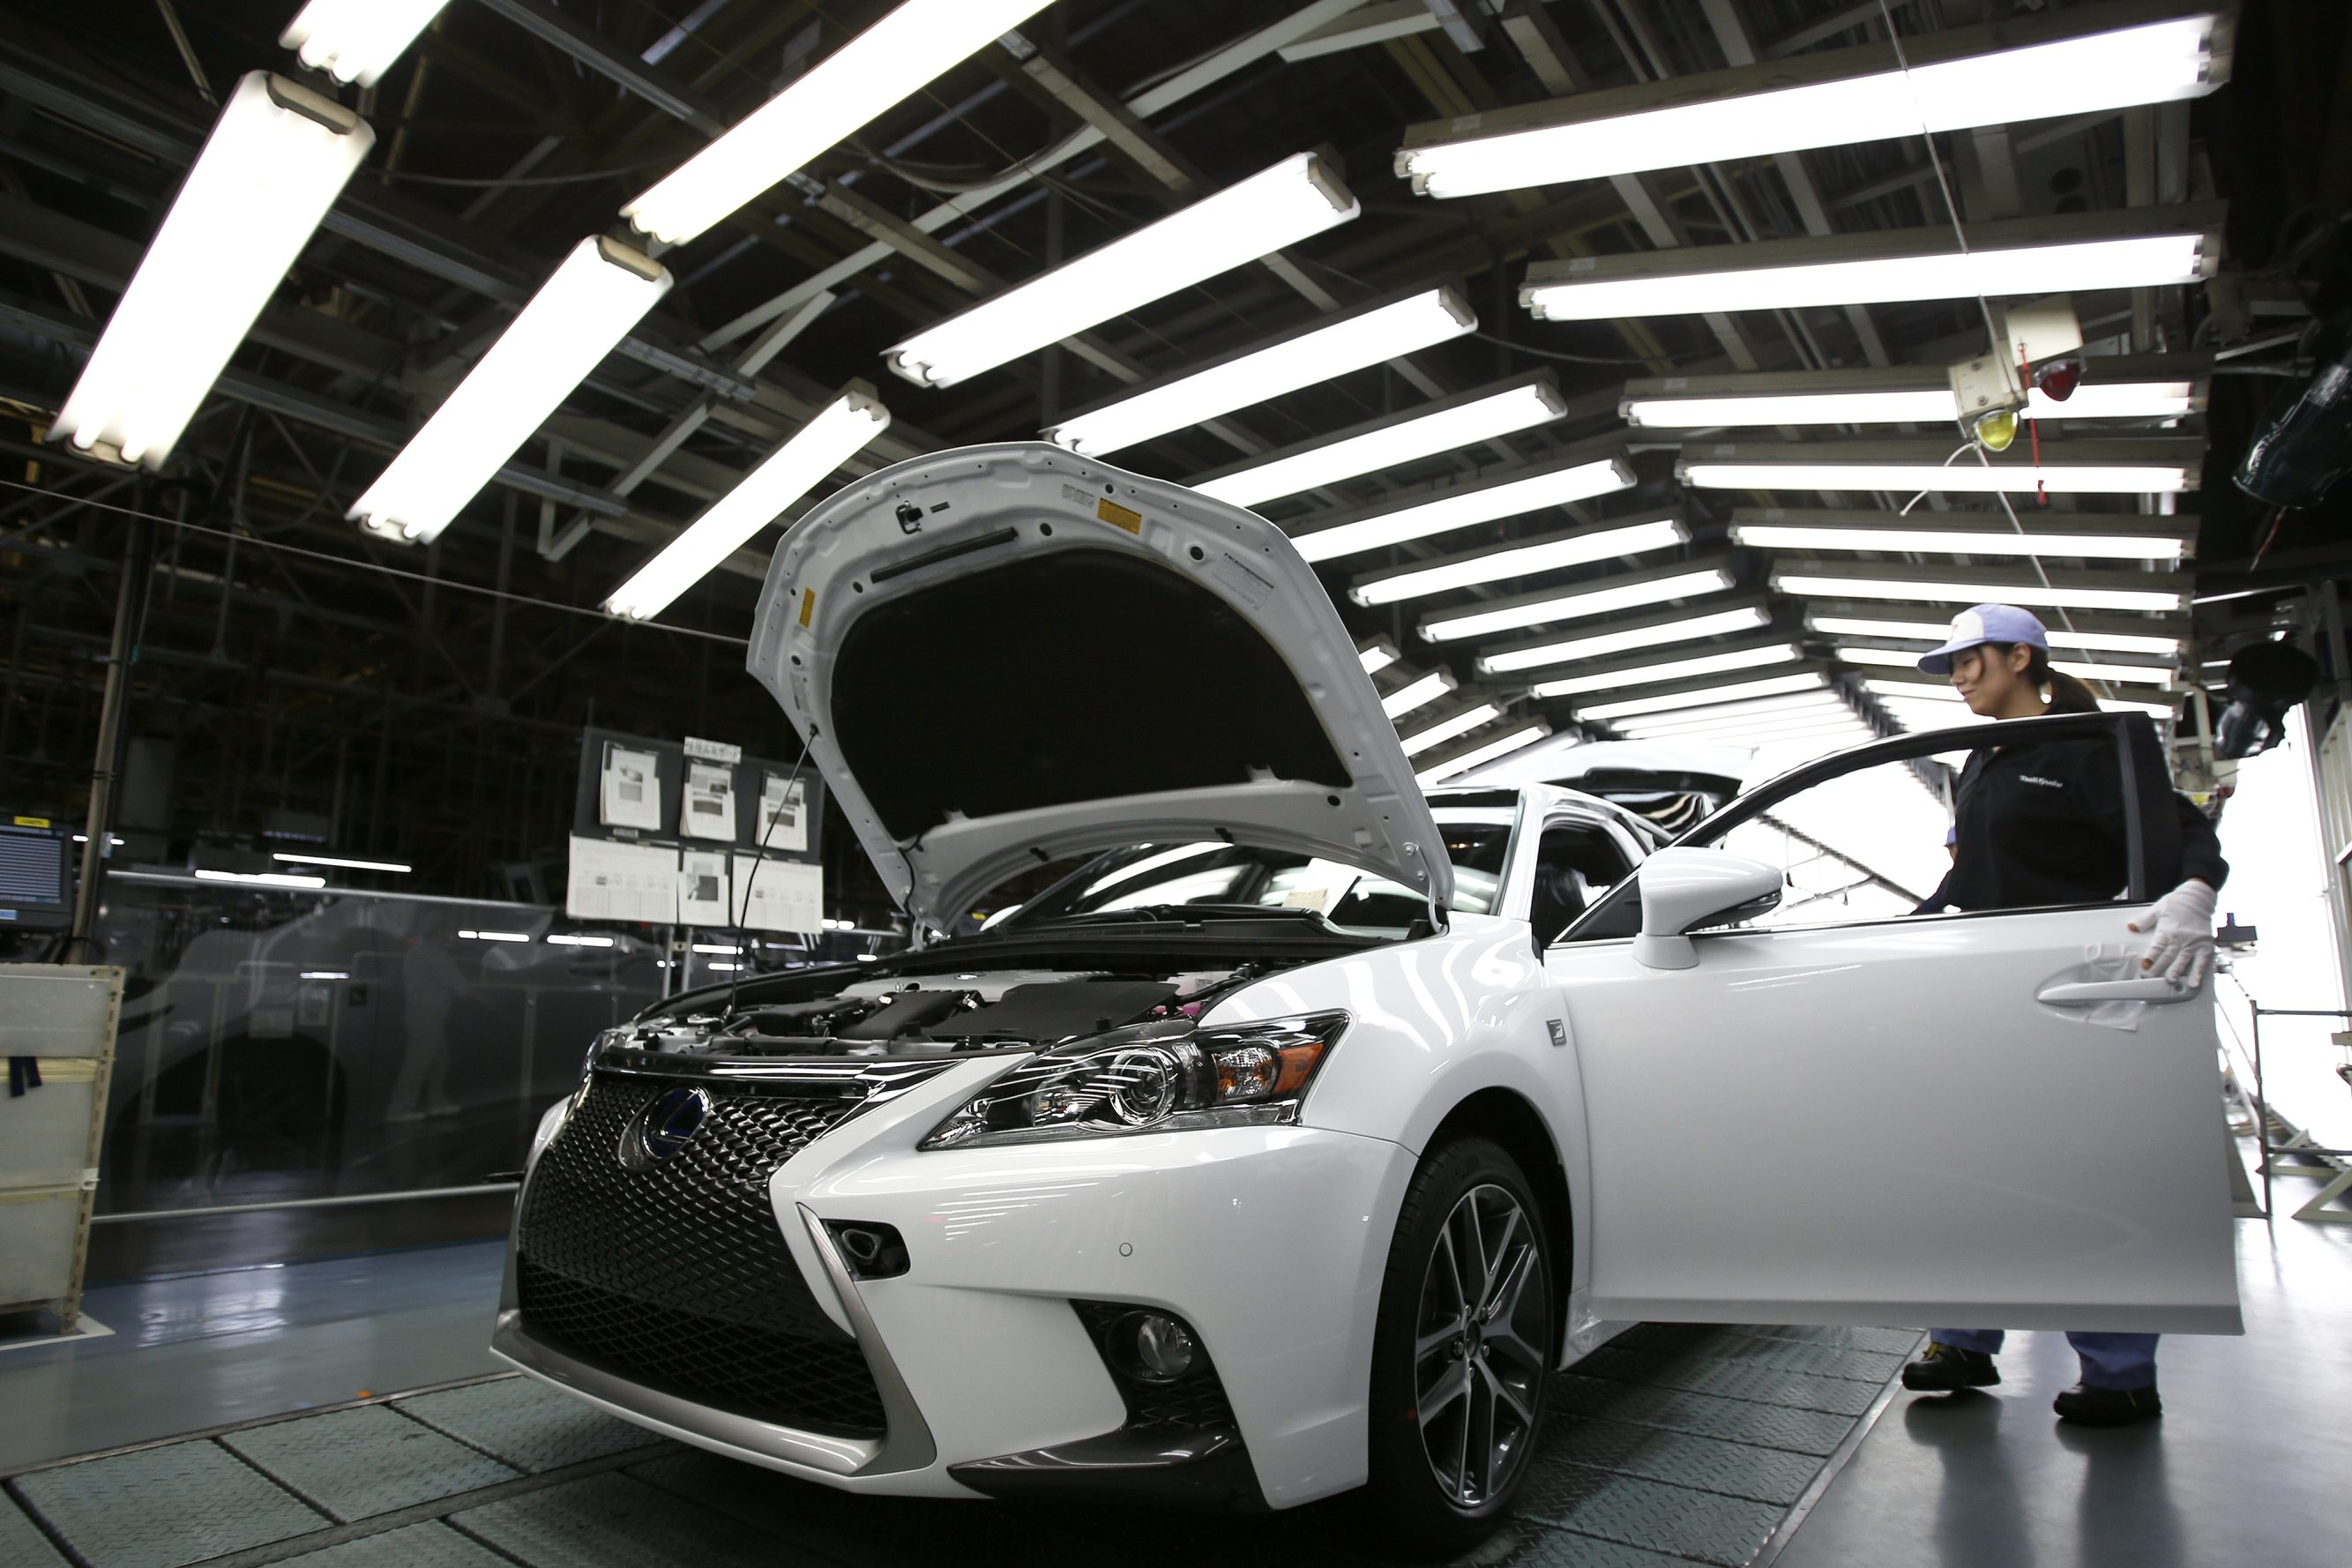 An employee inspects a Toyota Lexus CT200h F Sport vehicle on the production line at a Toyota plant in Miyawaka, Japan.